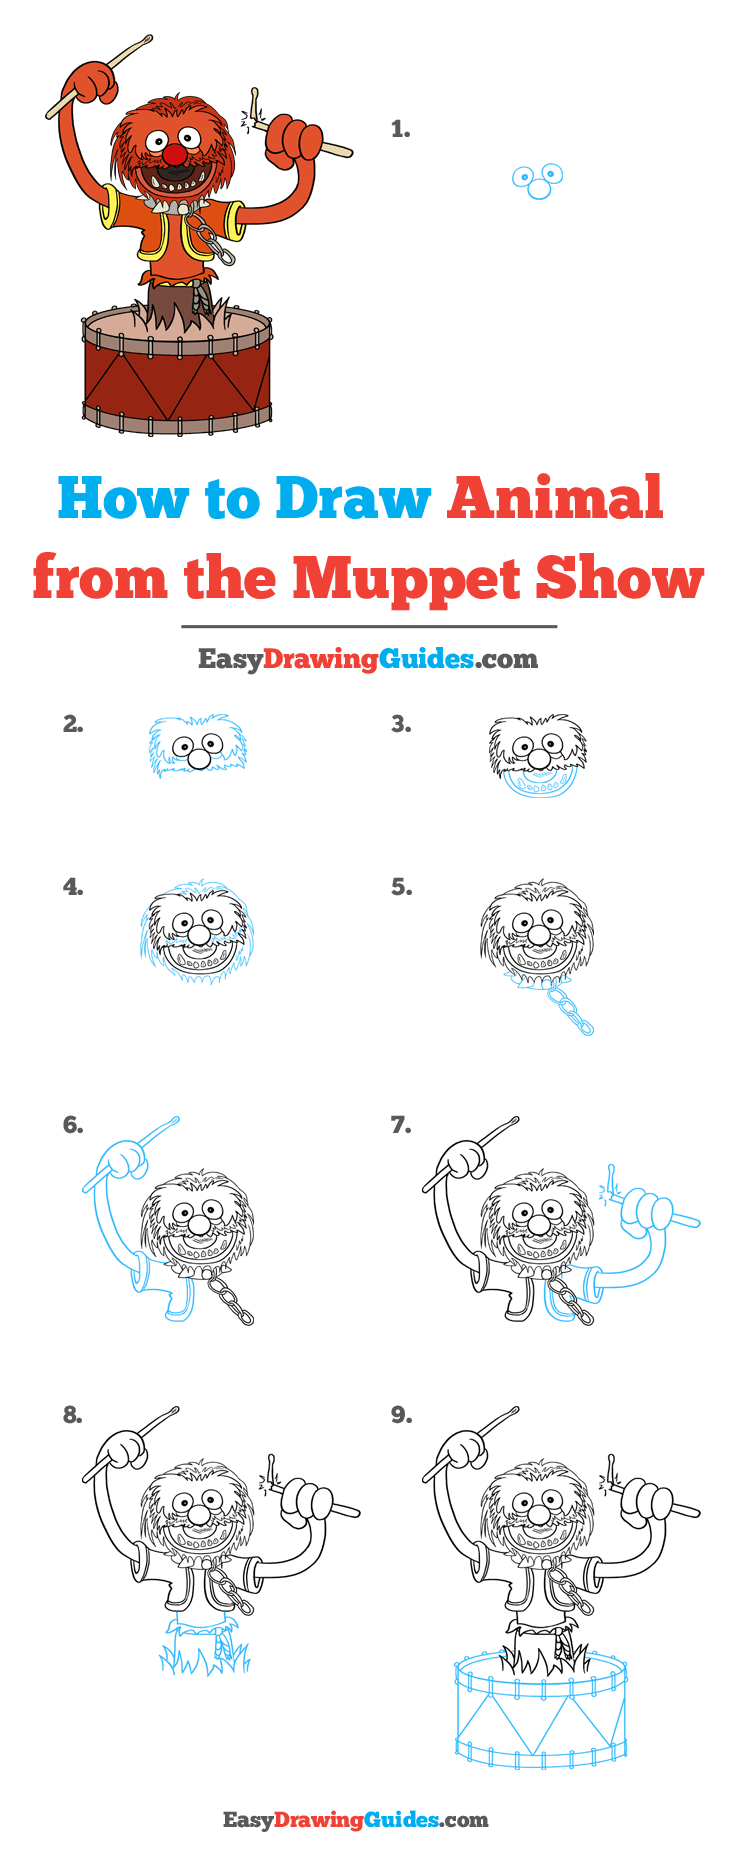 How to Draw Animal from the Muppet Show